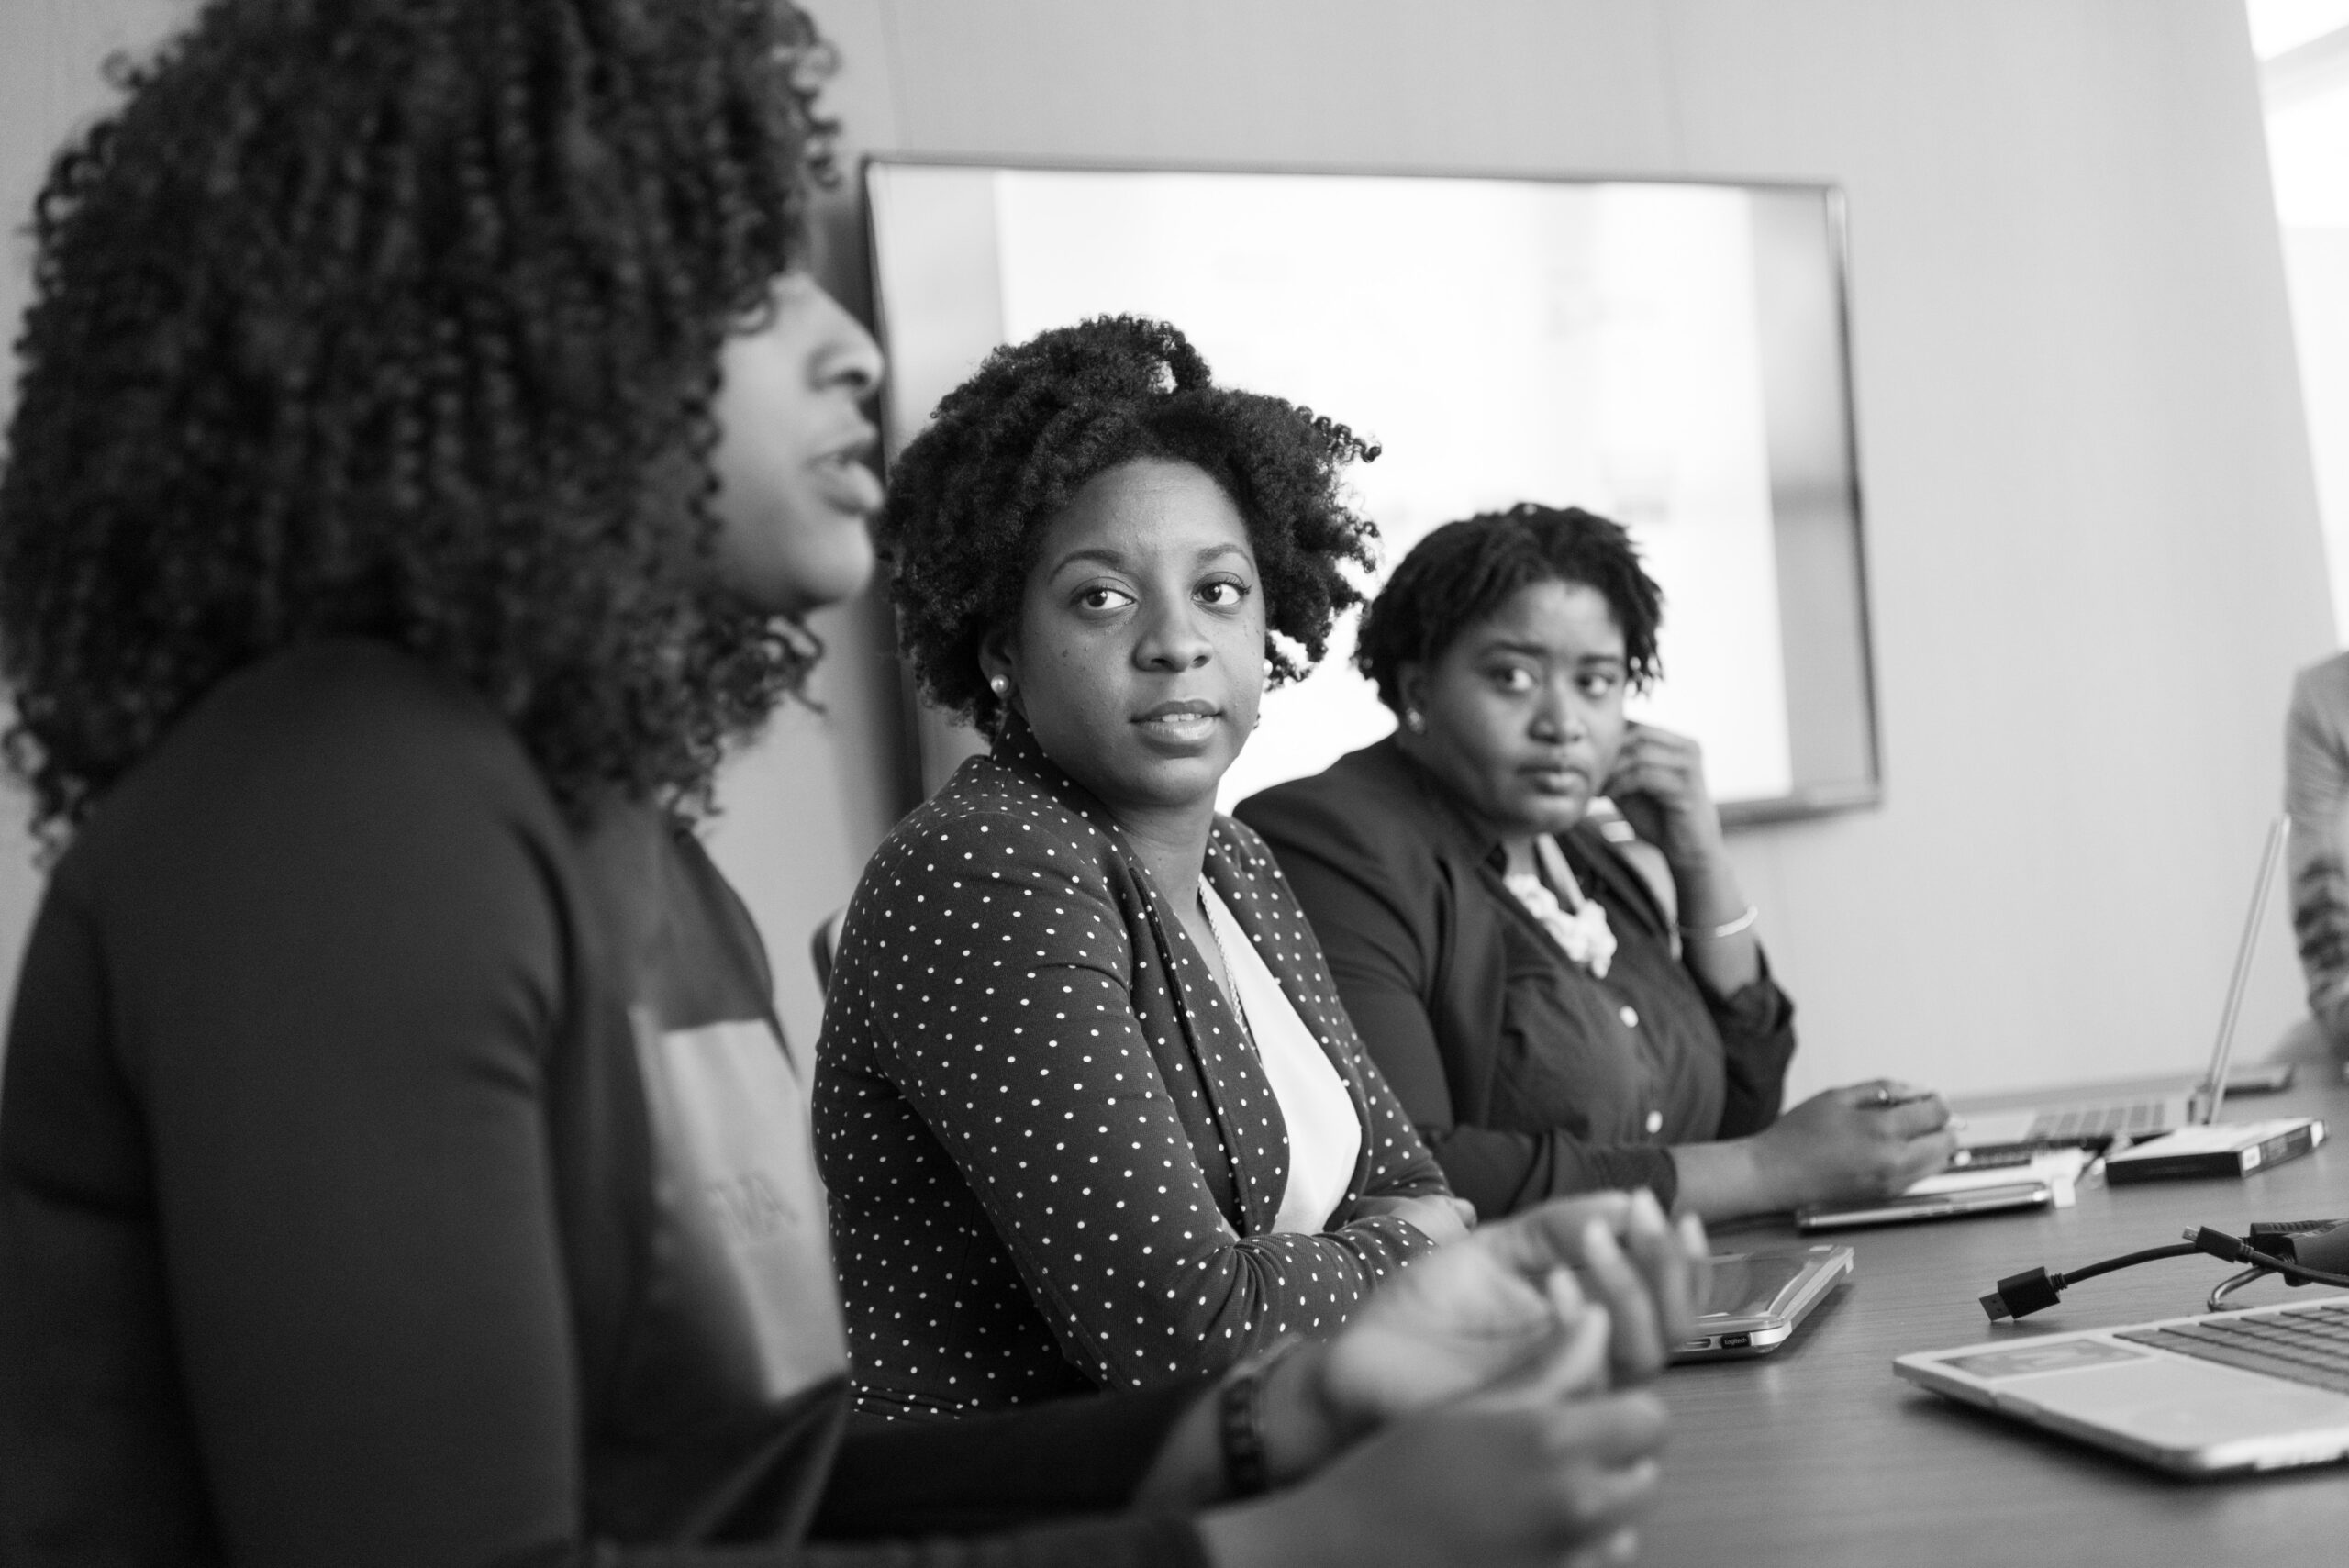 Less favoured: Breaking the silence on Intersectional Toxicity